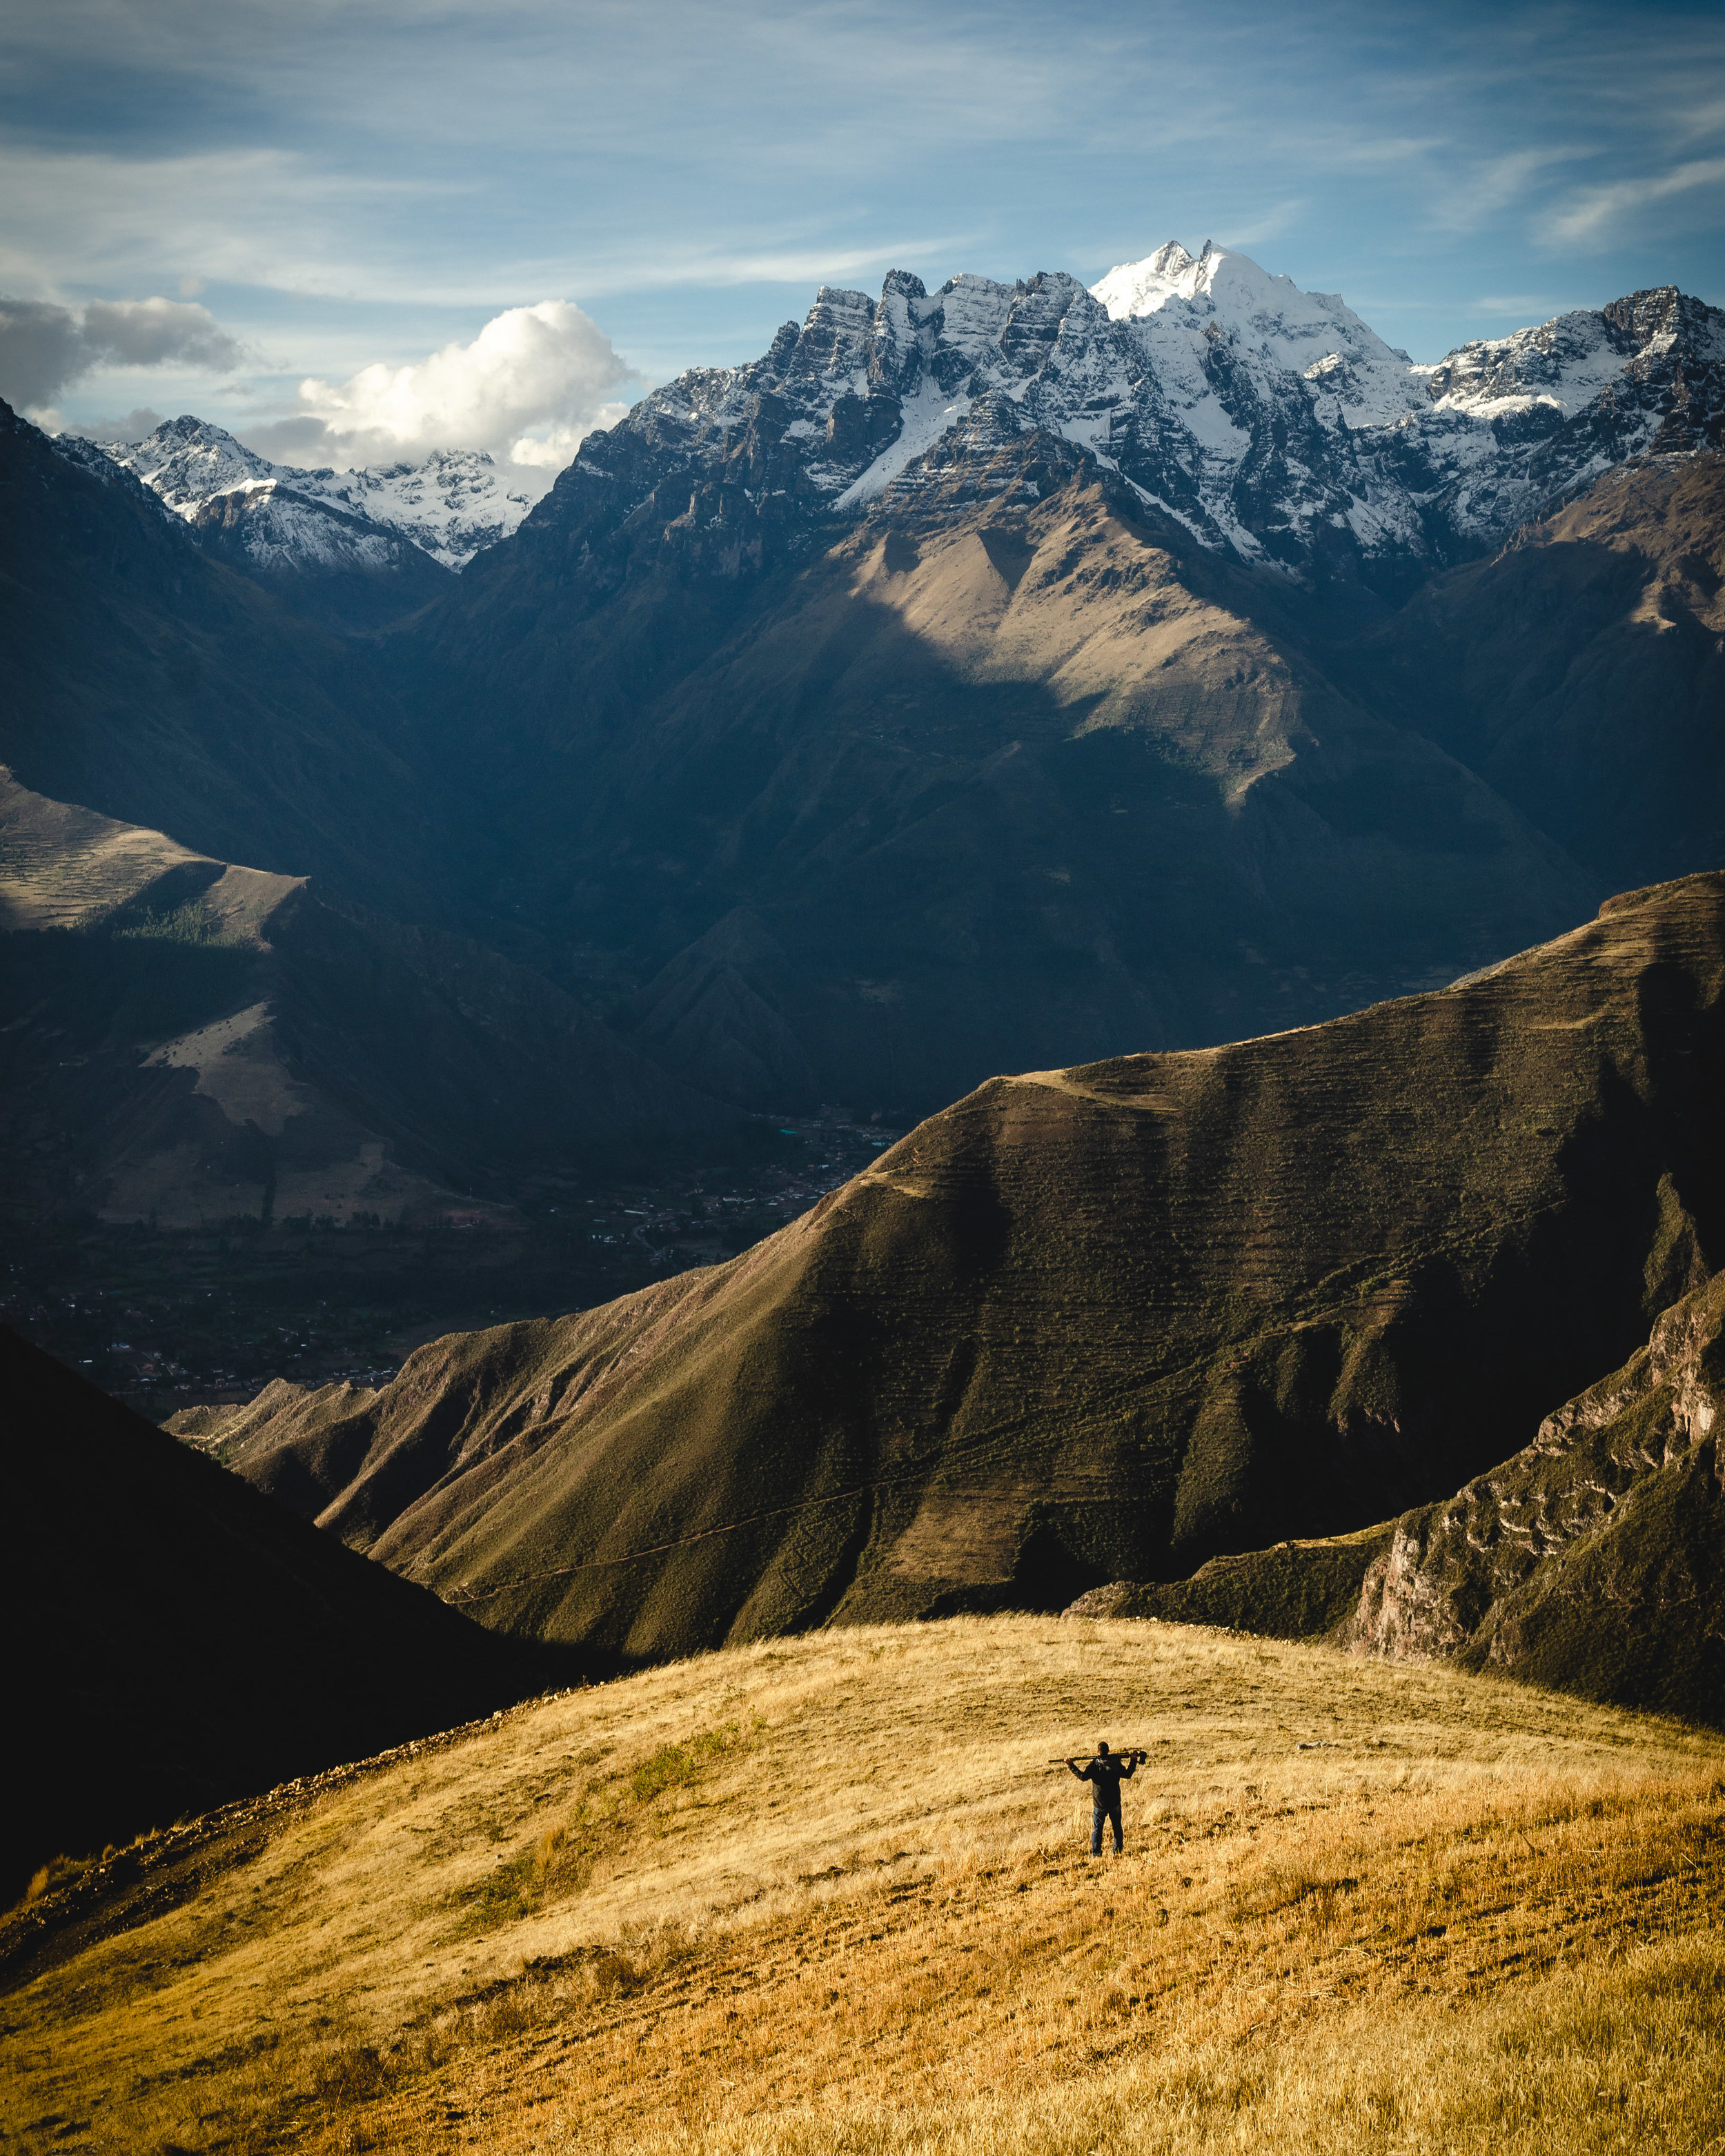 Salt Mines, Andes Mountains and Quechua Farmers - Photography day tour from Cusco